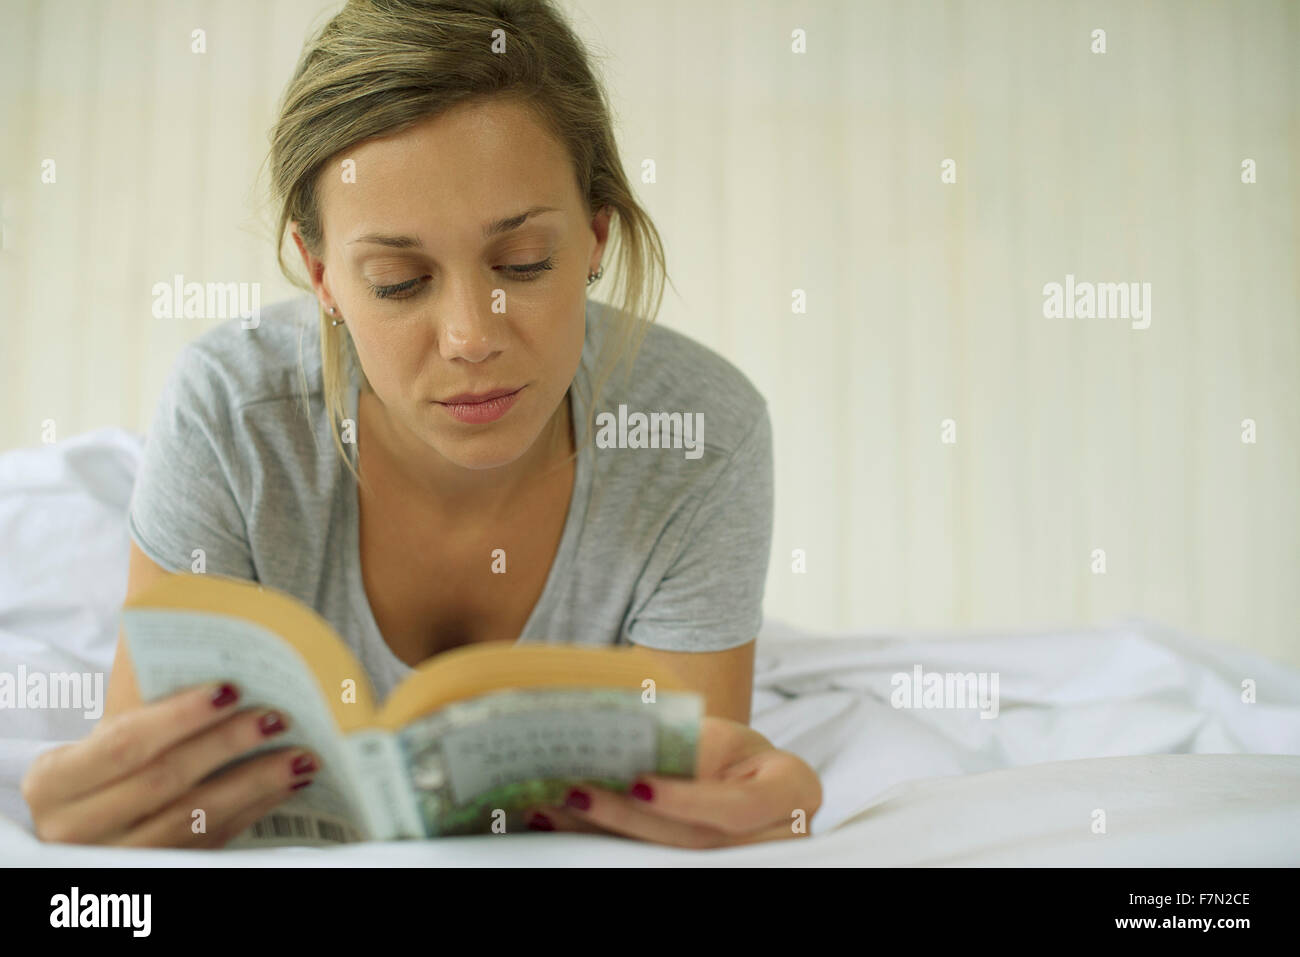 Woman lying on stomach reading book - Stock Image